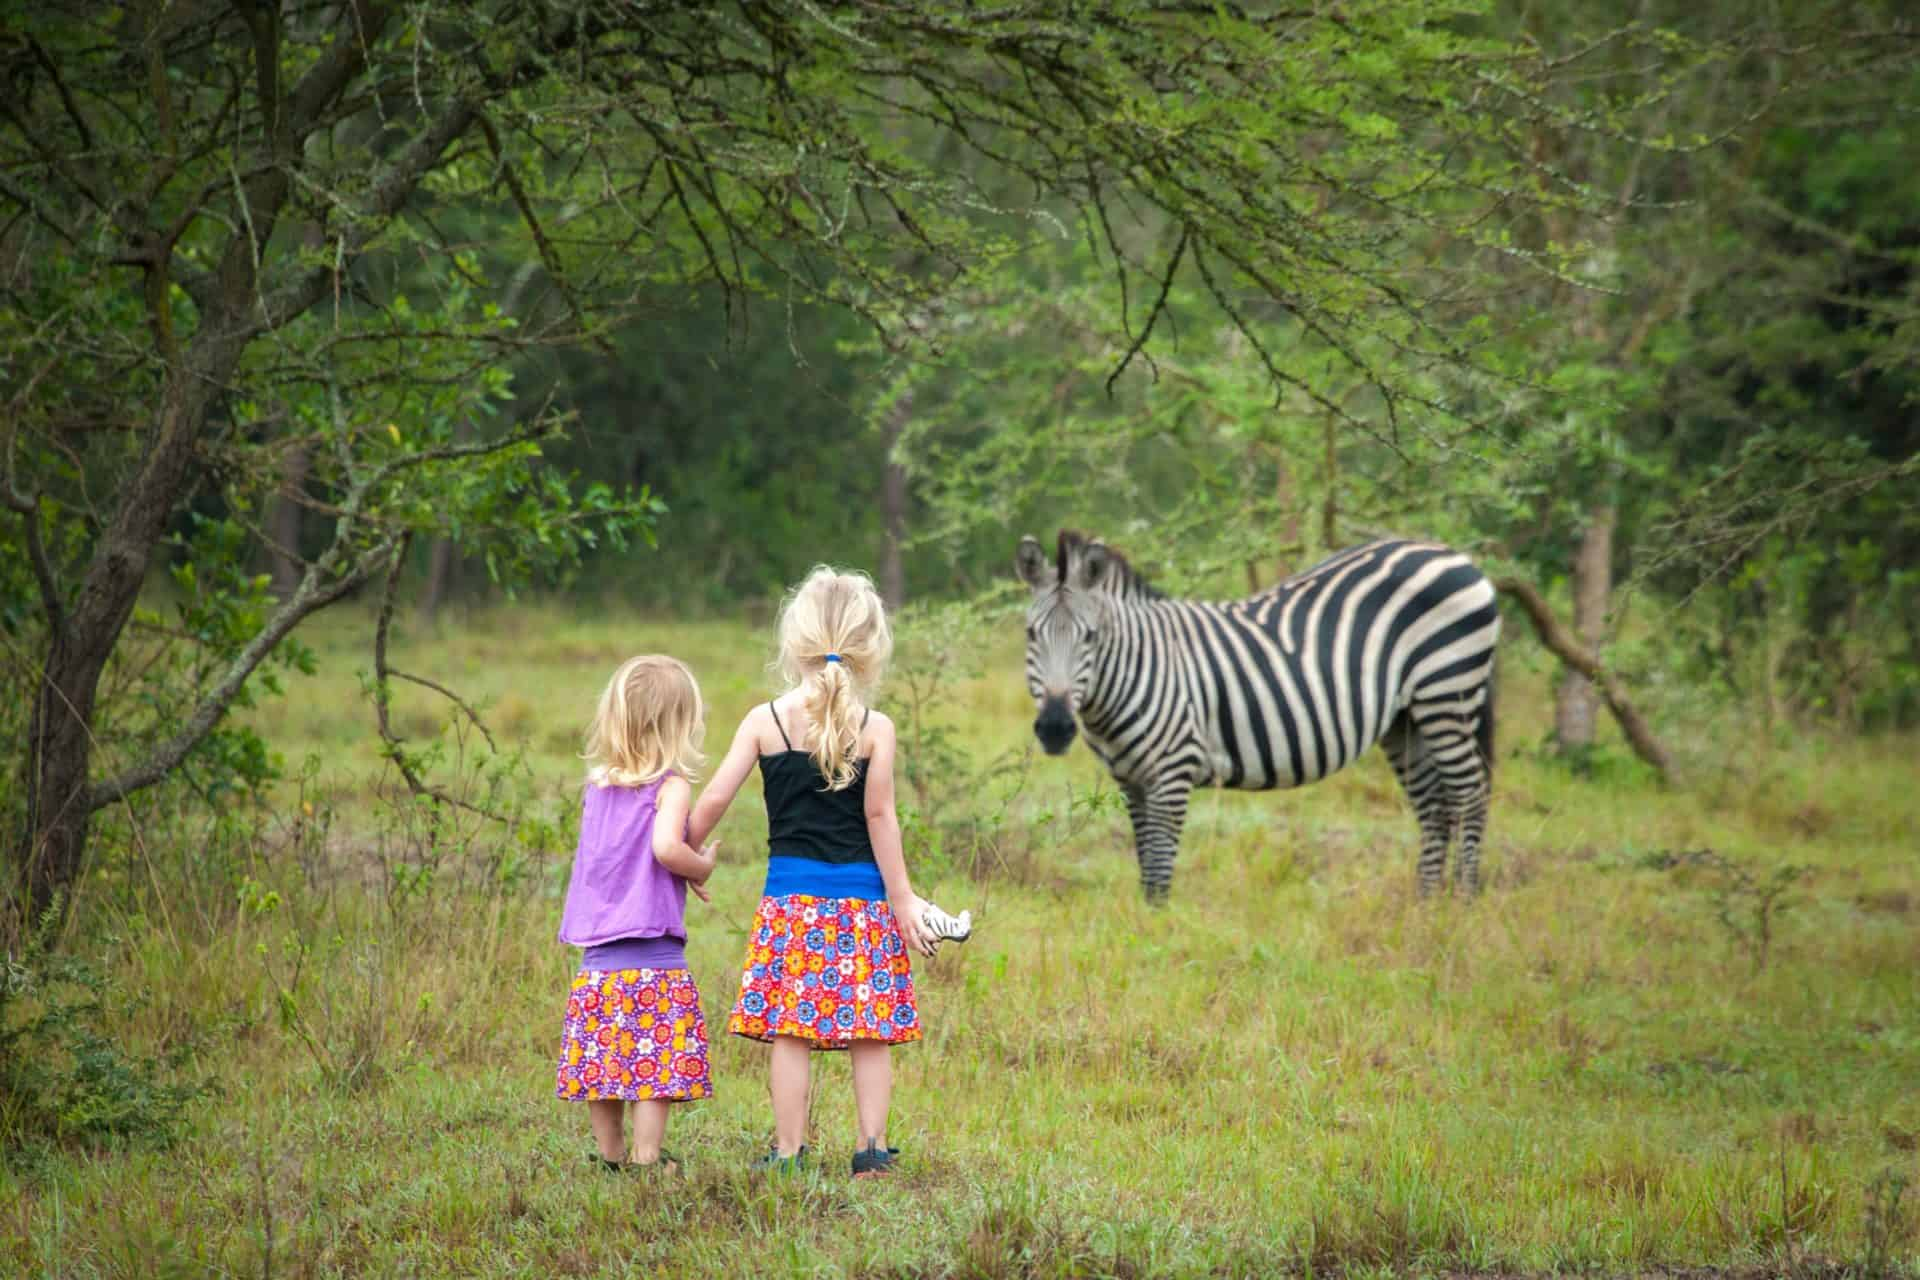 Two girls showing their toys to zebra in safari park